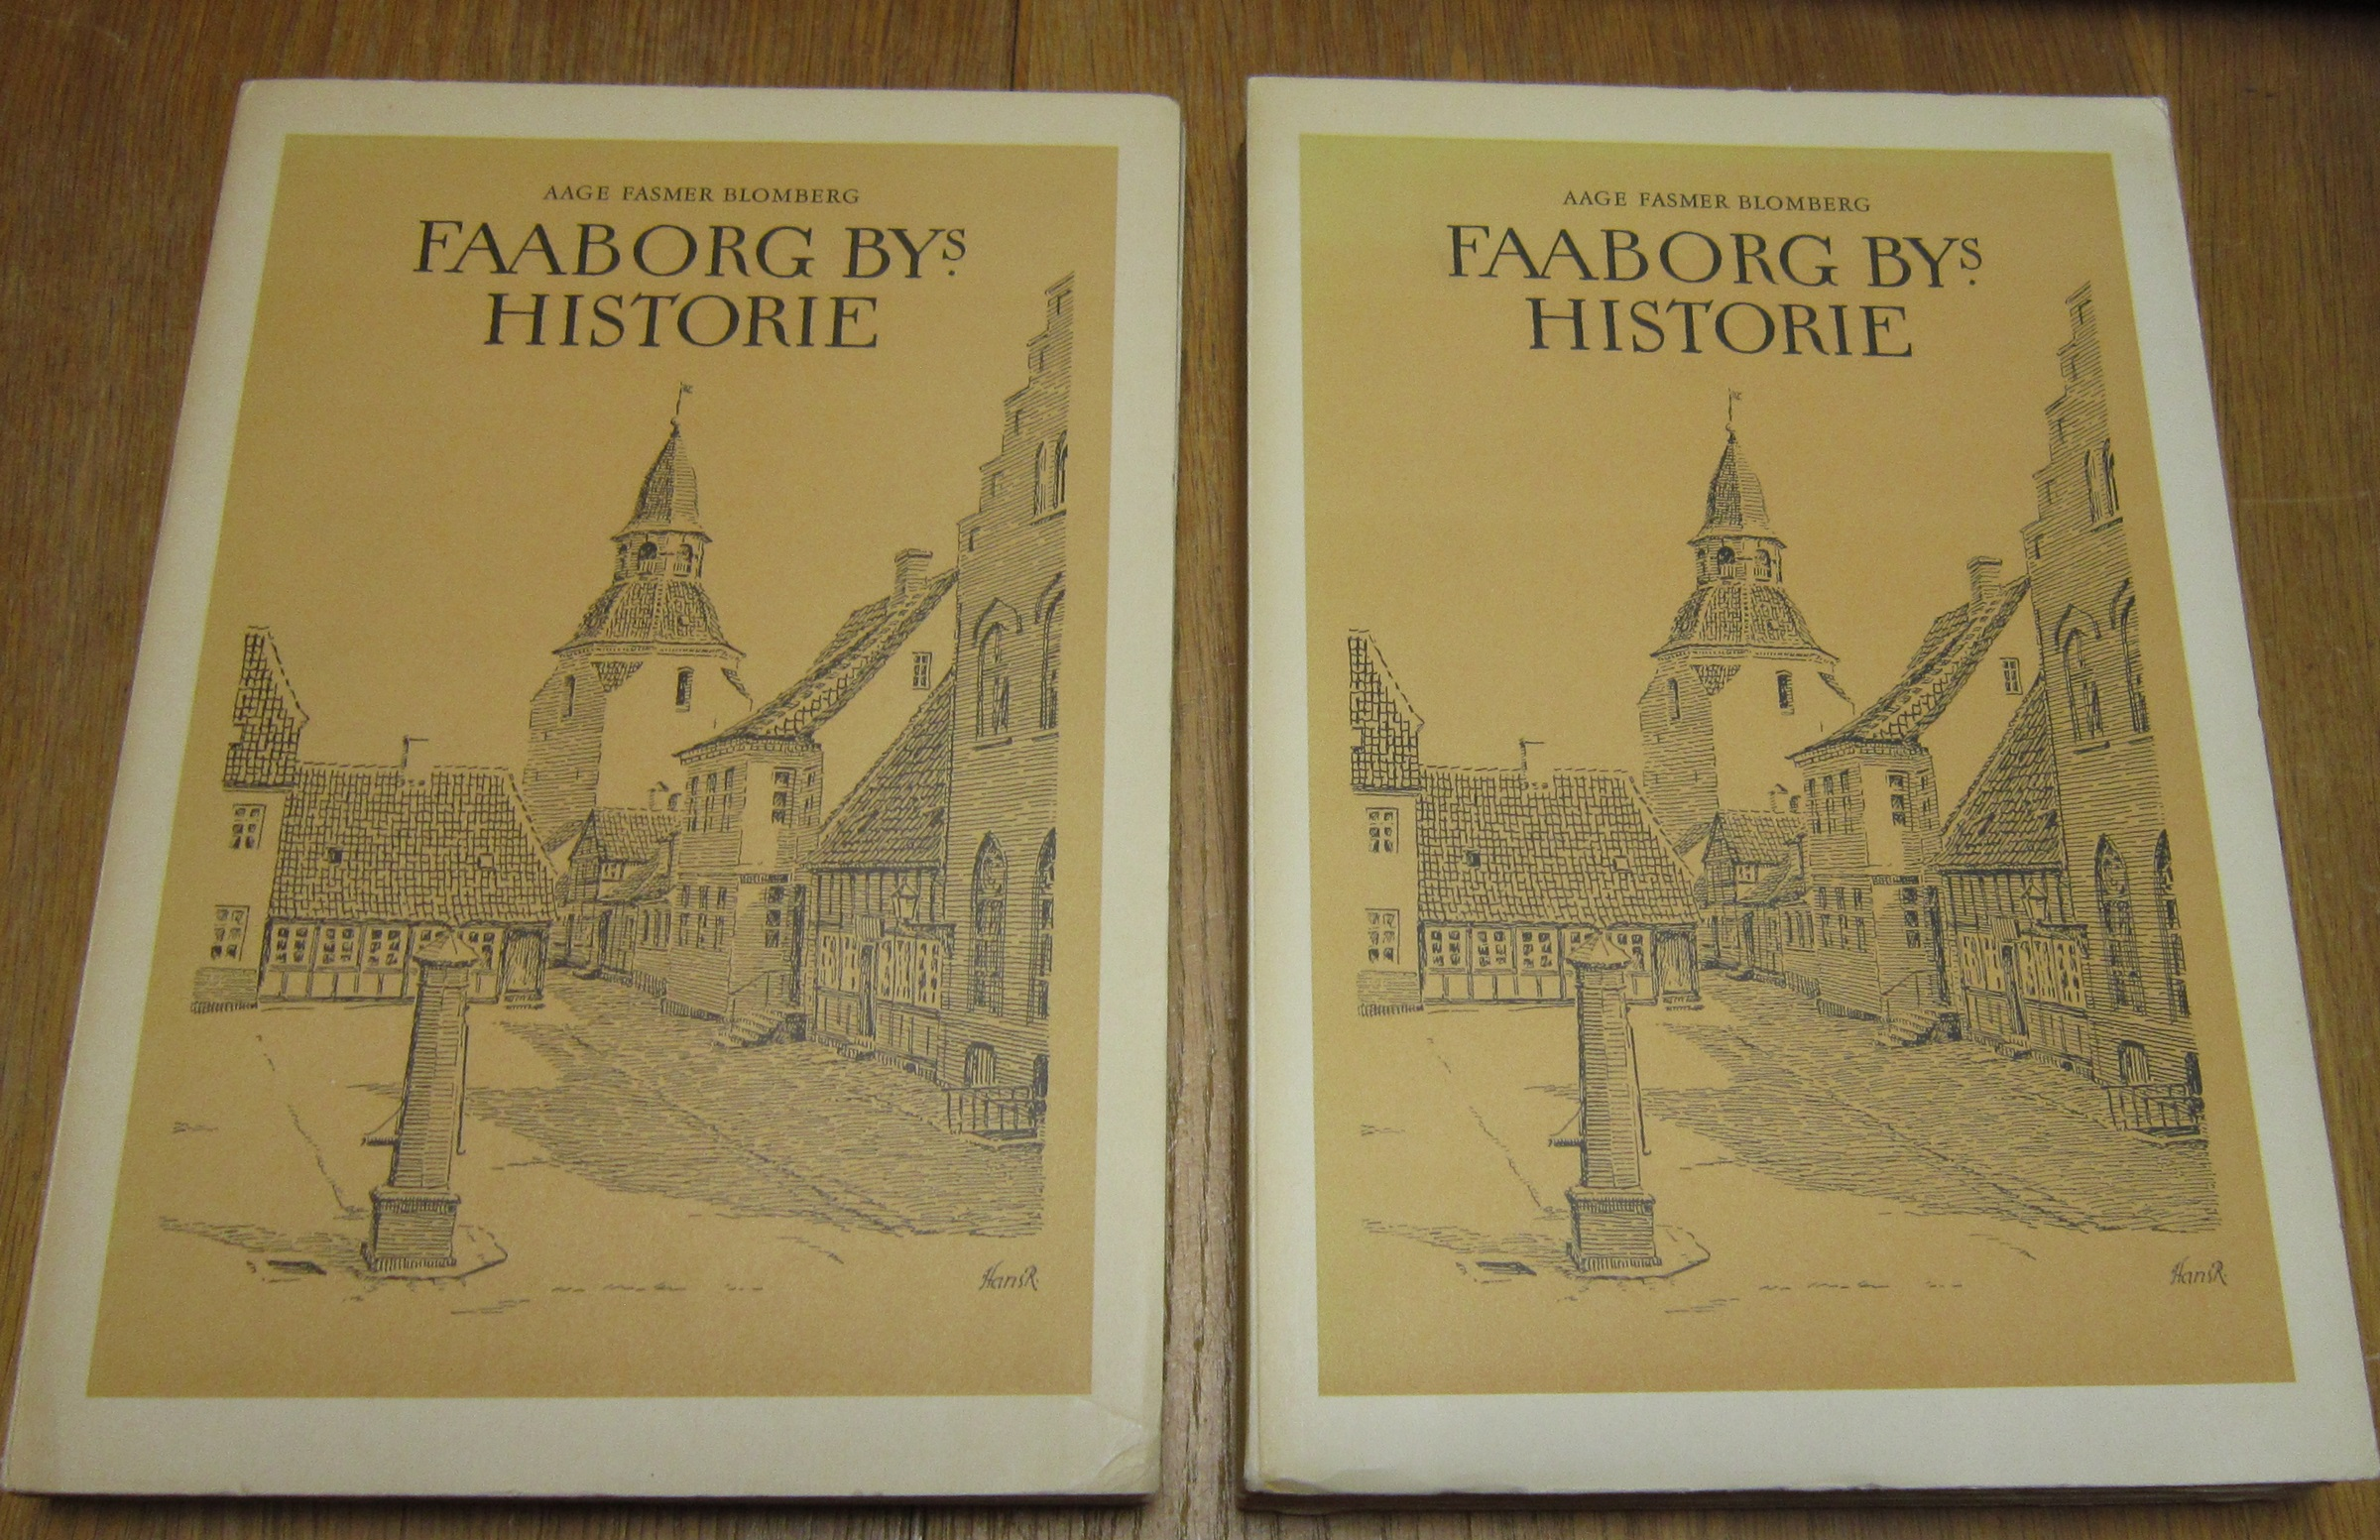 Faaborg bys historie 1 - 2